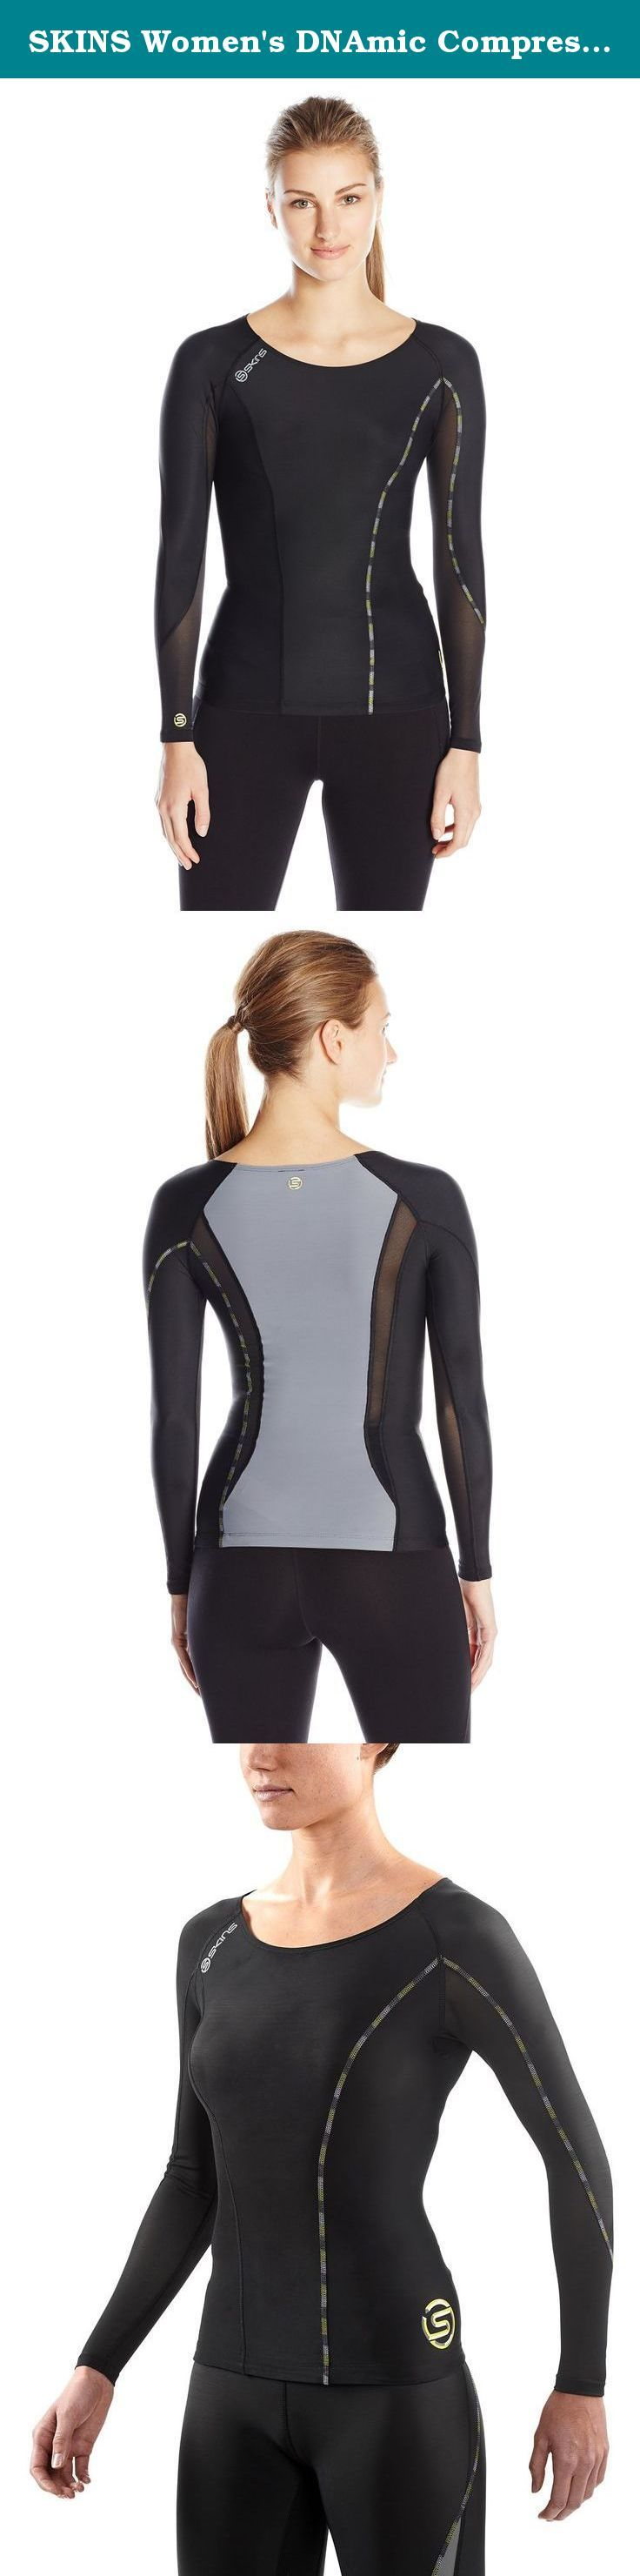 SKINS Women's DNAmic Compression Long sleeve Top, Black/Limoncello, X-Large. The SKINS dynamic range brings our original scientifically proven sports compression clothing line to new fit and performance highs. If your sport means that you need to push your upper body to the limit and be fighting fit the next morning, then the dynamic compression top is what you're in need of. Our engineered gradient compression increases blood flow and oxygen supply to your muscles to improve your...